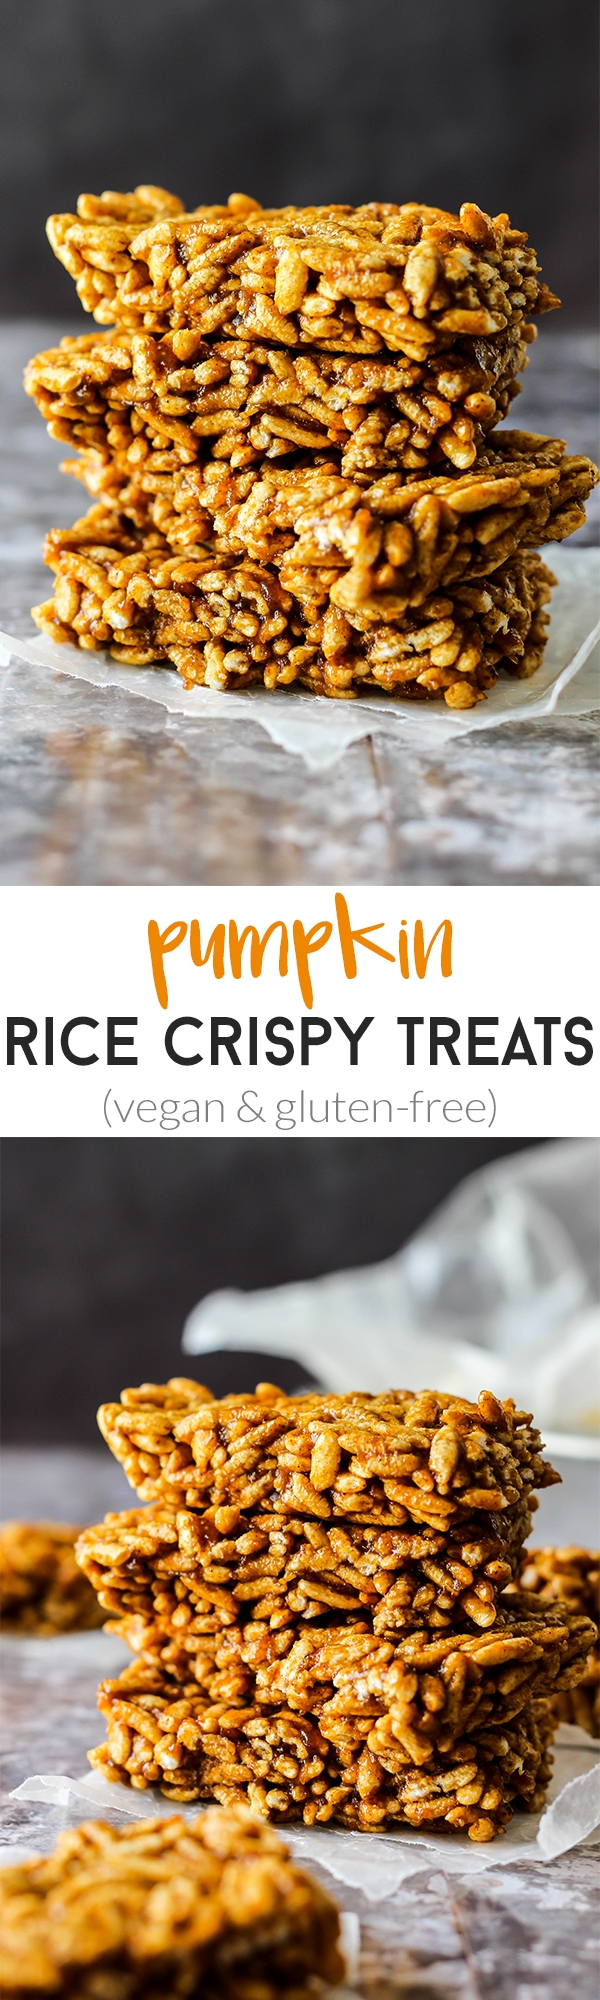 These easy Pumpkin Rice Crispy Treats are just like the ones you loved, with a fall twist! They're vegan, gluten-free, and made with wholesome ingredients.